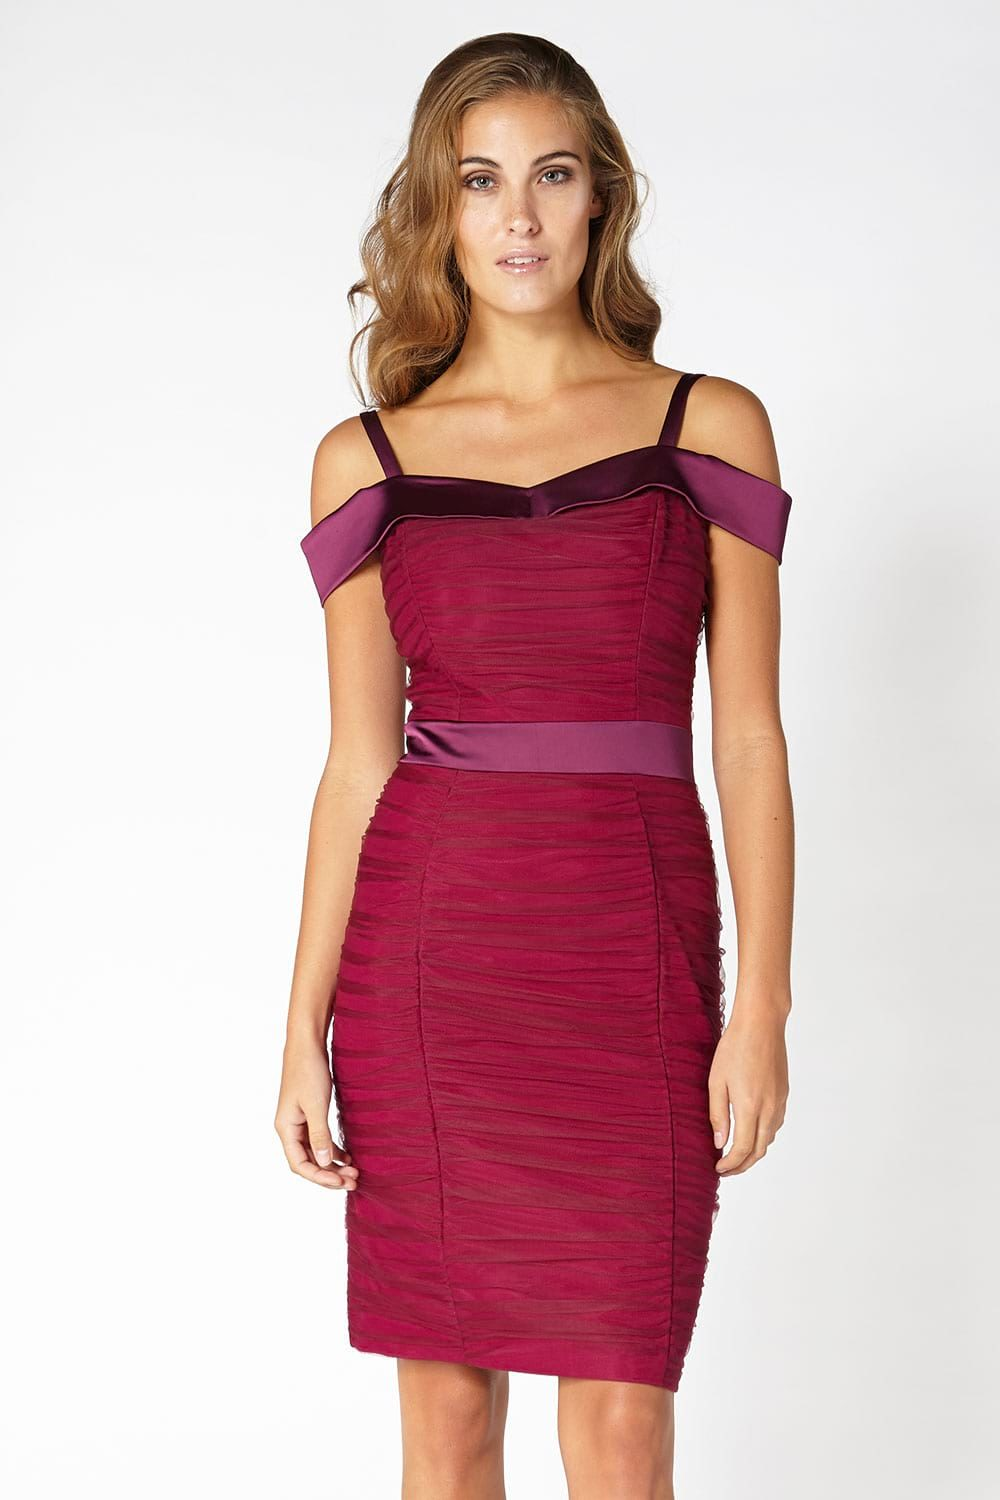 Hybrid Fashion Vivien 1184 Tulle Ruched Bodycon Dress